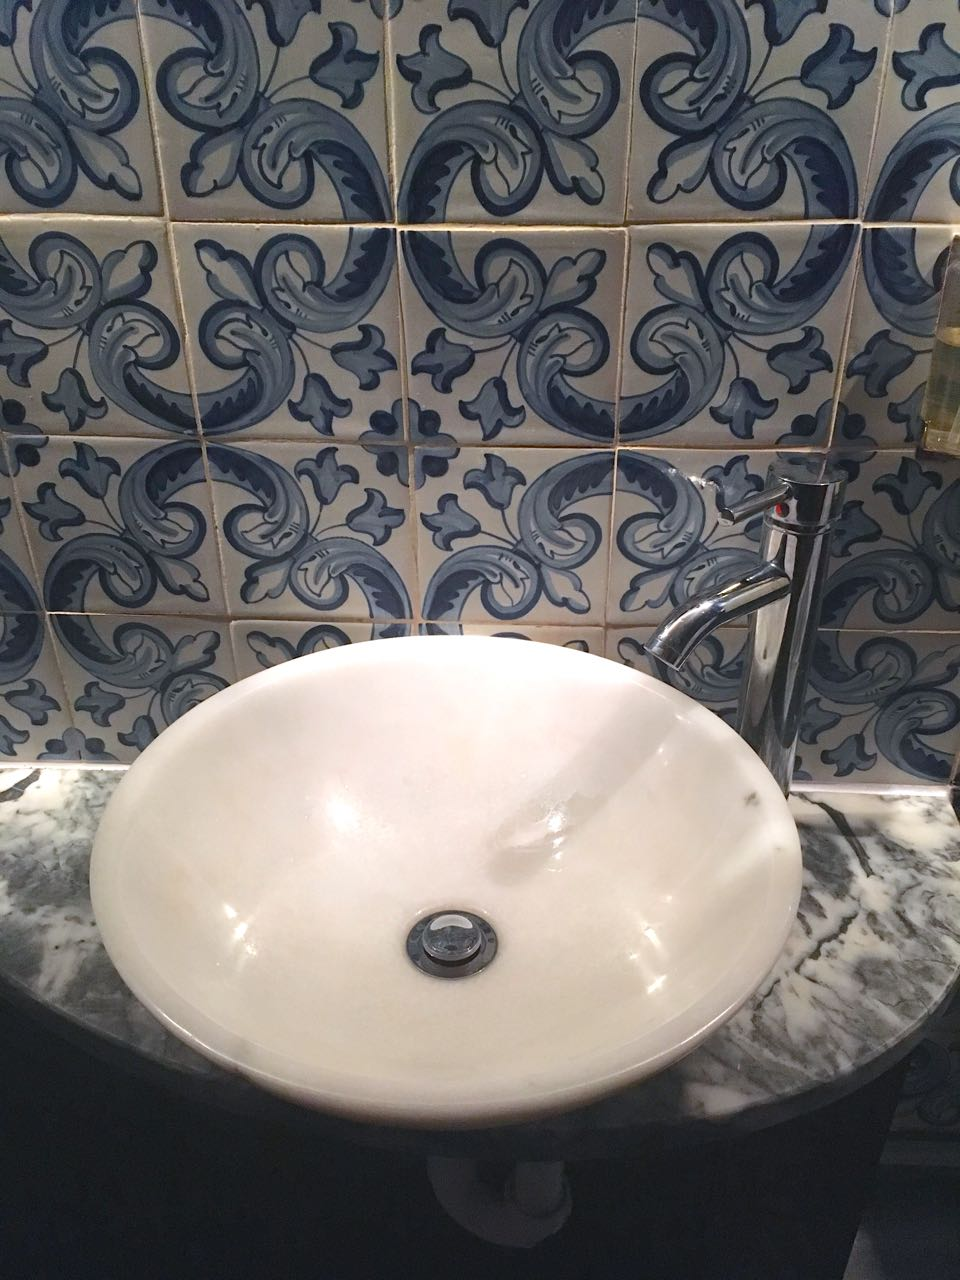 Blue and white tiles by the sink in the loos